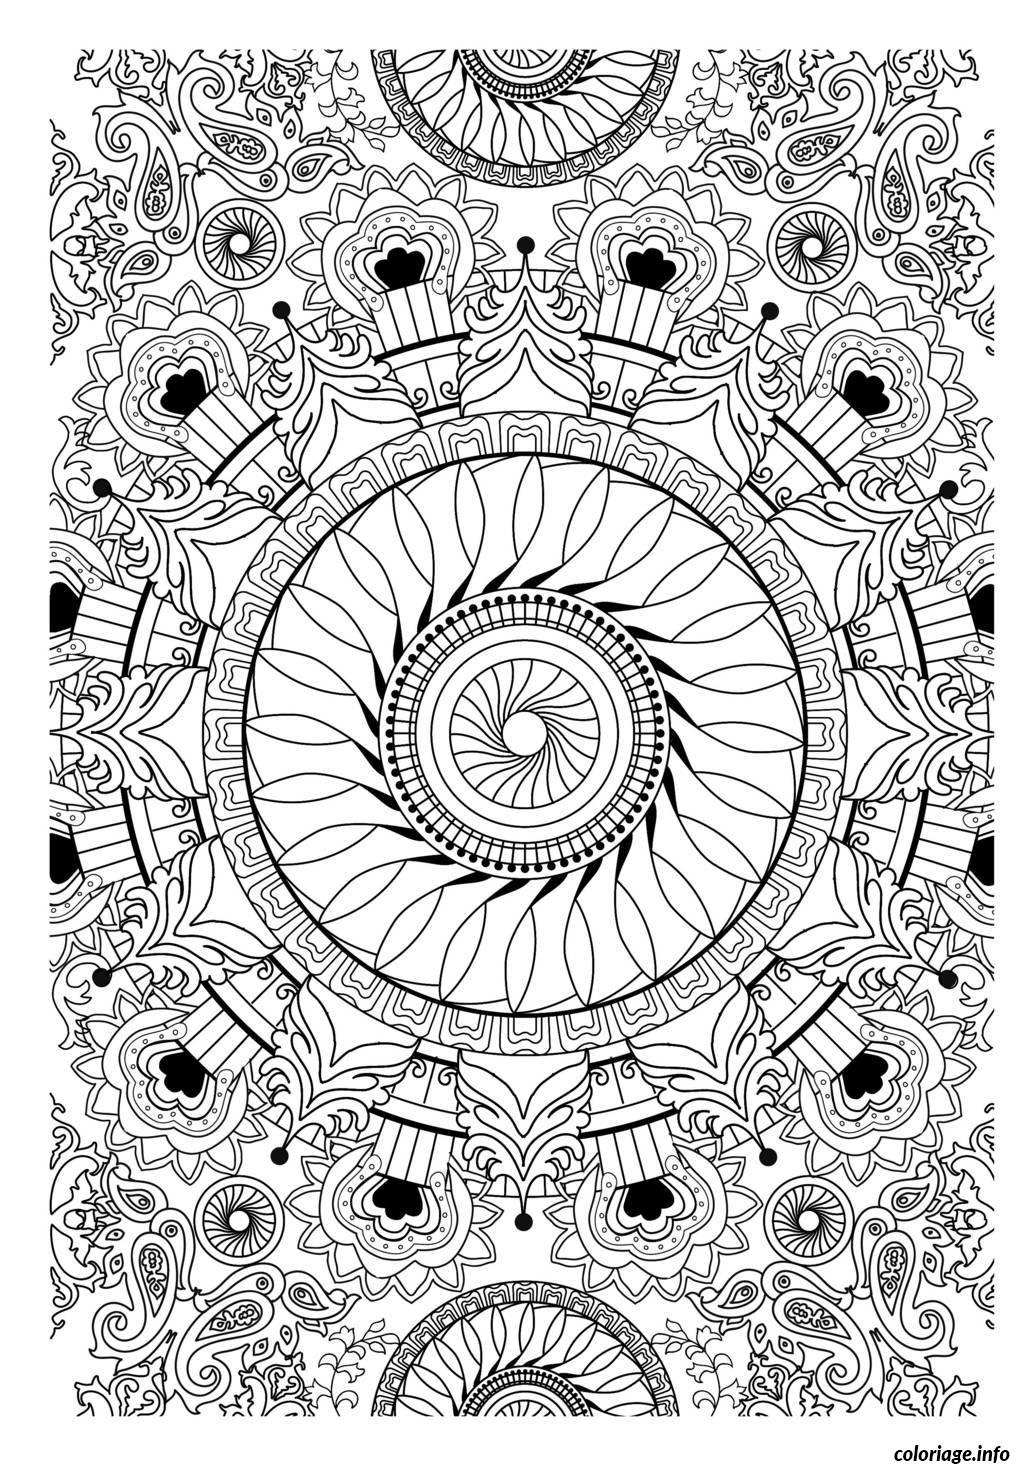 Coloriage free mandala to color vegetation dessin - Dessin vegetation ...